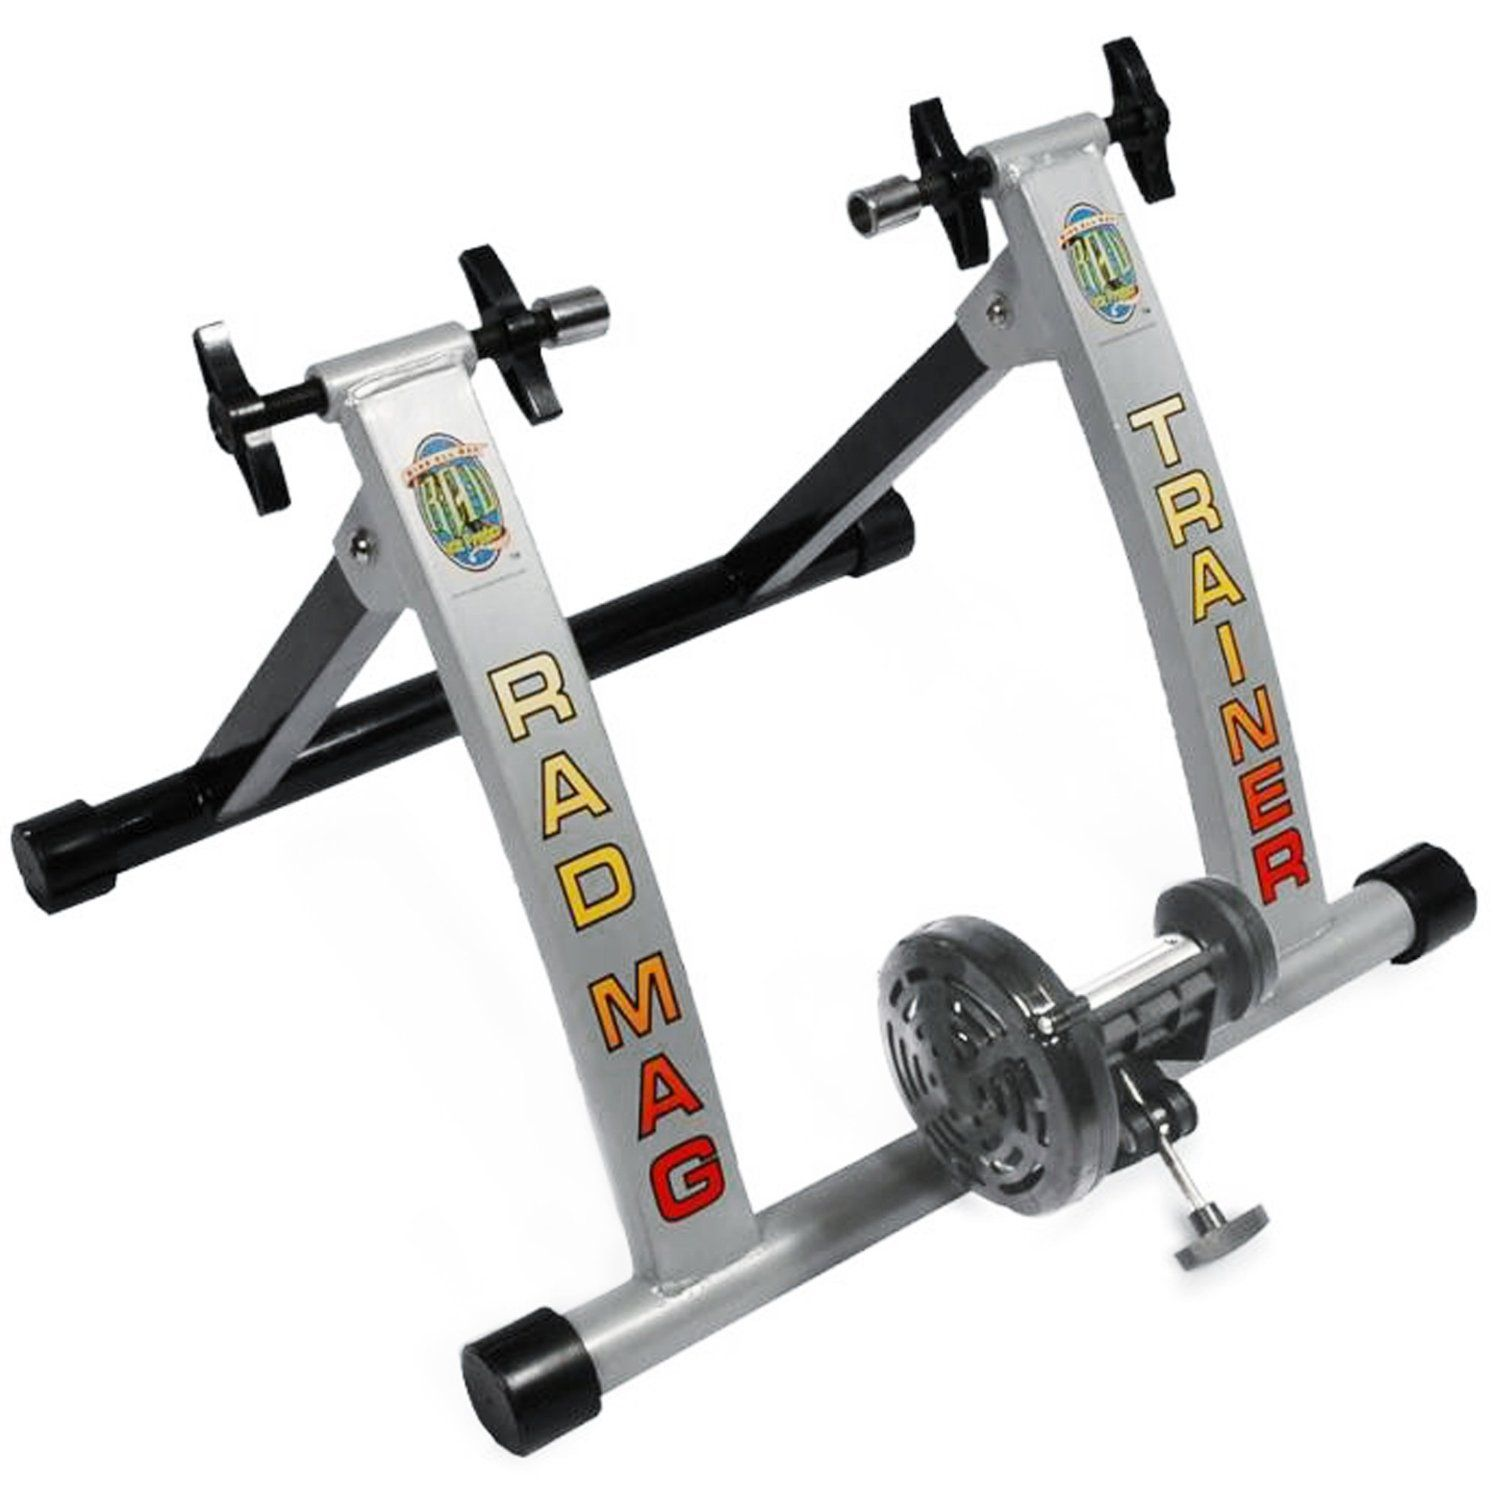 Top 10 Best Bike Trainers Reviews Bicycle Trainers Bicycle Workout